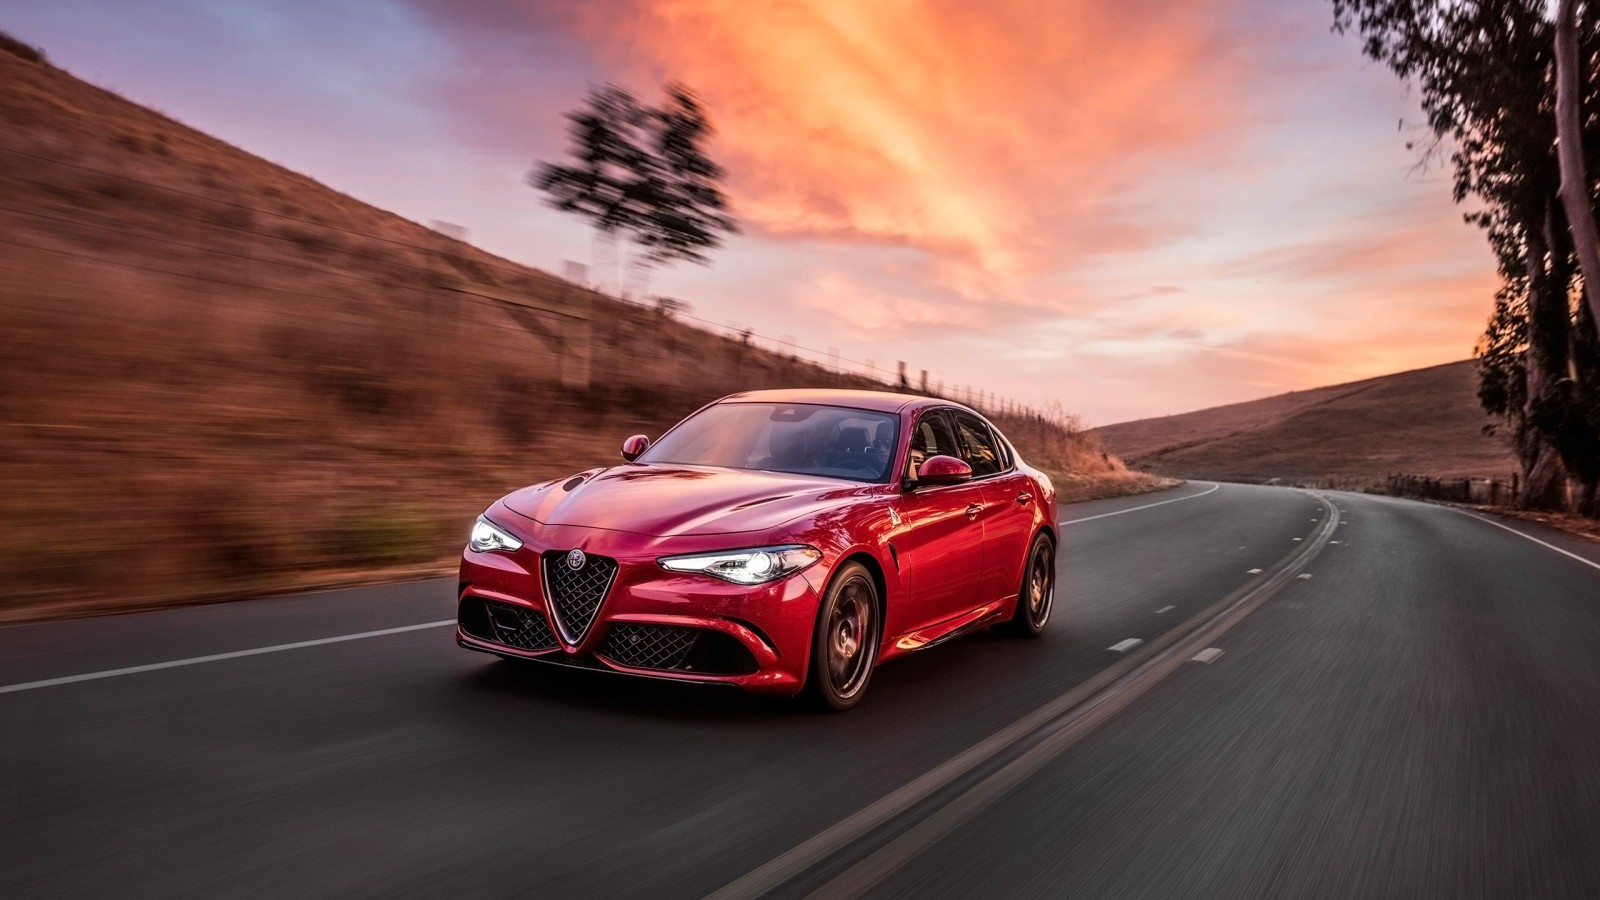 Alfa Romeo 4c >> 2017 Alfa Romeo Giulia Quadrifoglio Wallpaper | HD Car ...